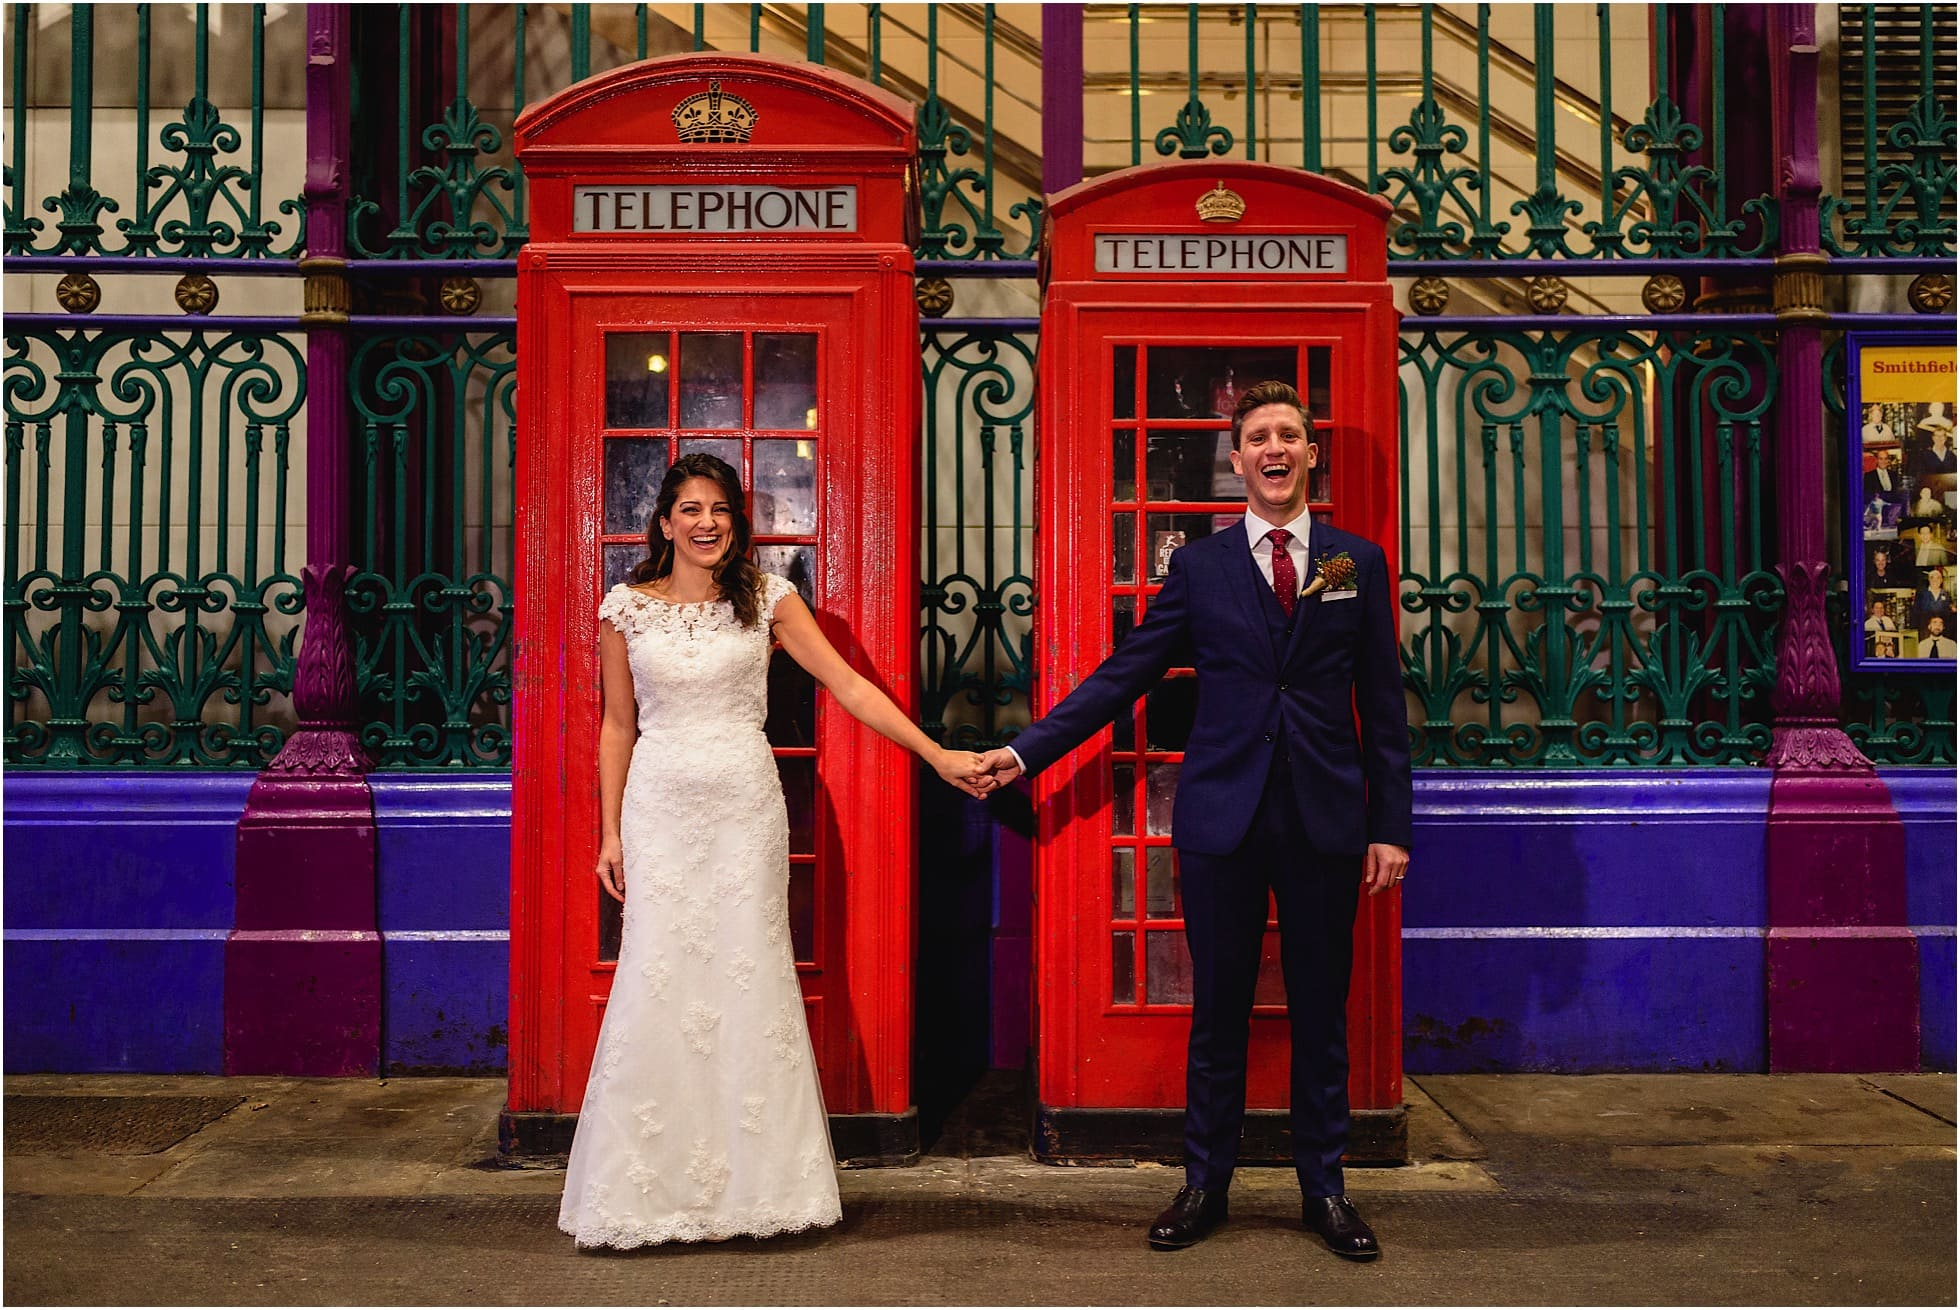 smithfield market telephone boxes wedding photographs